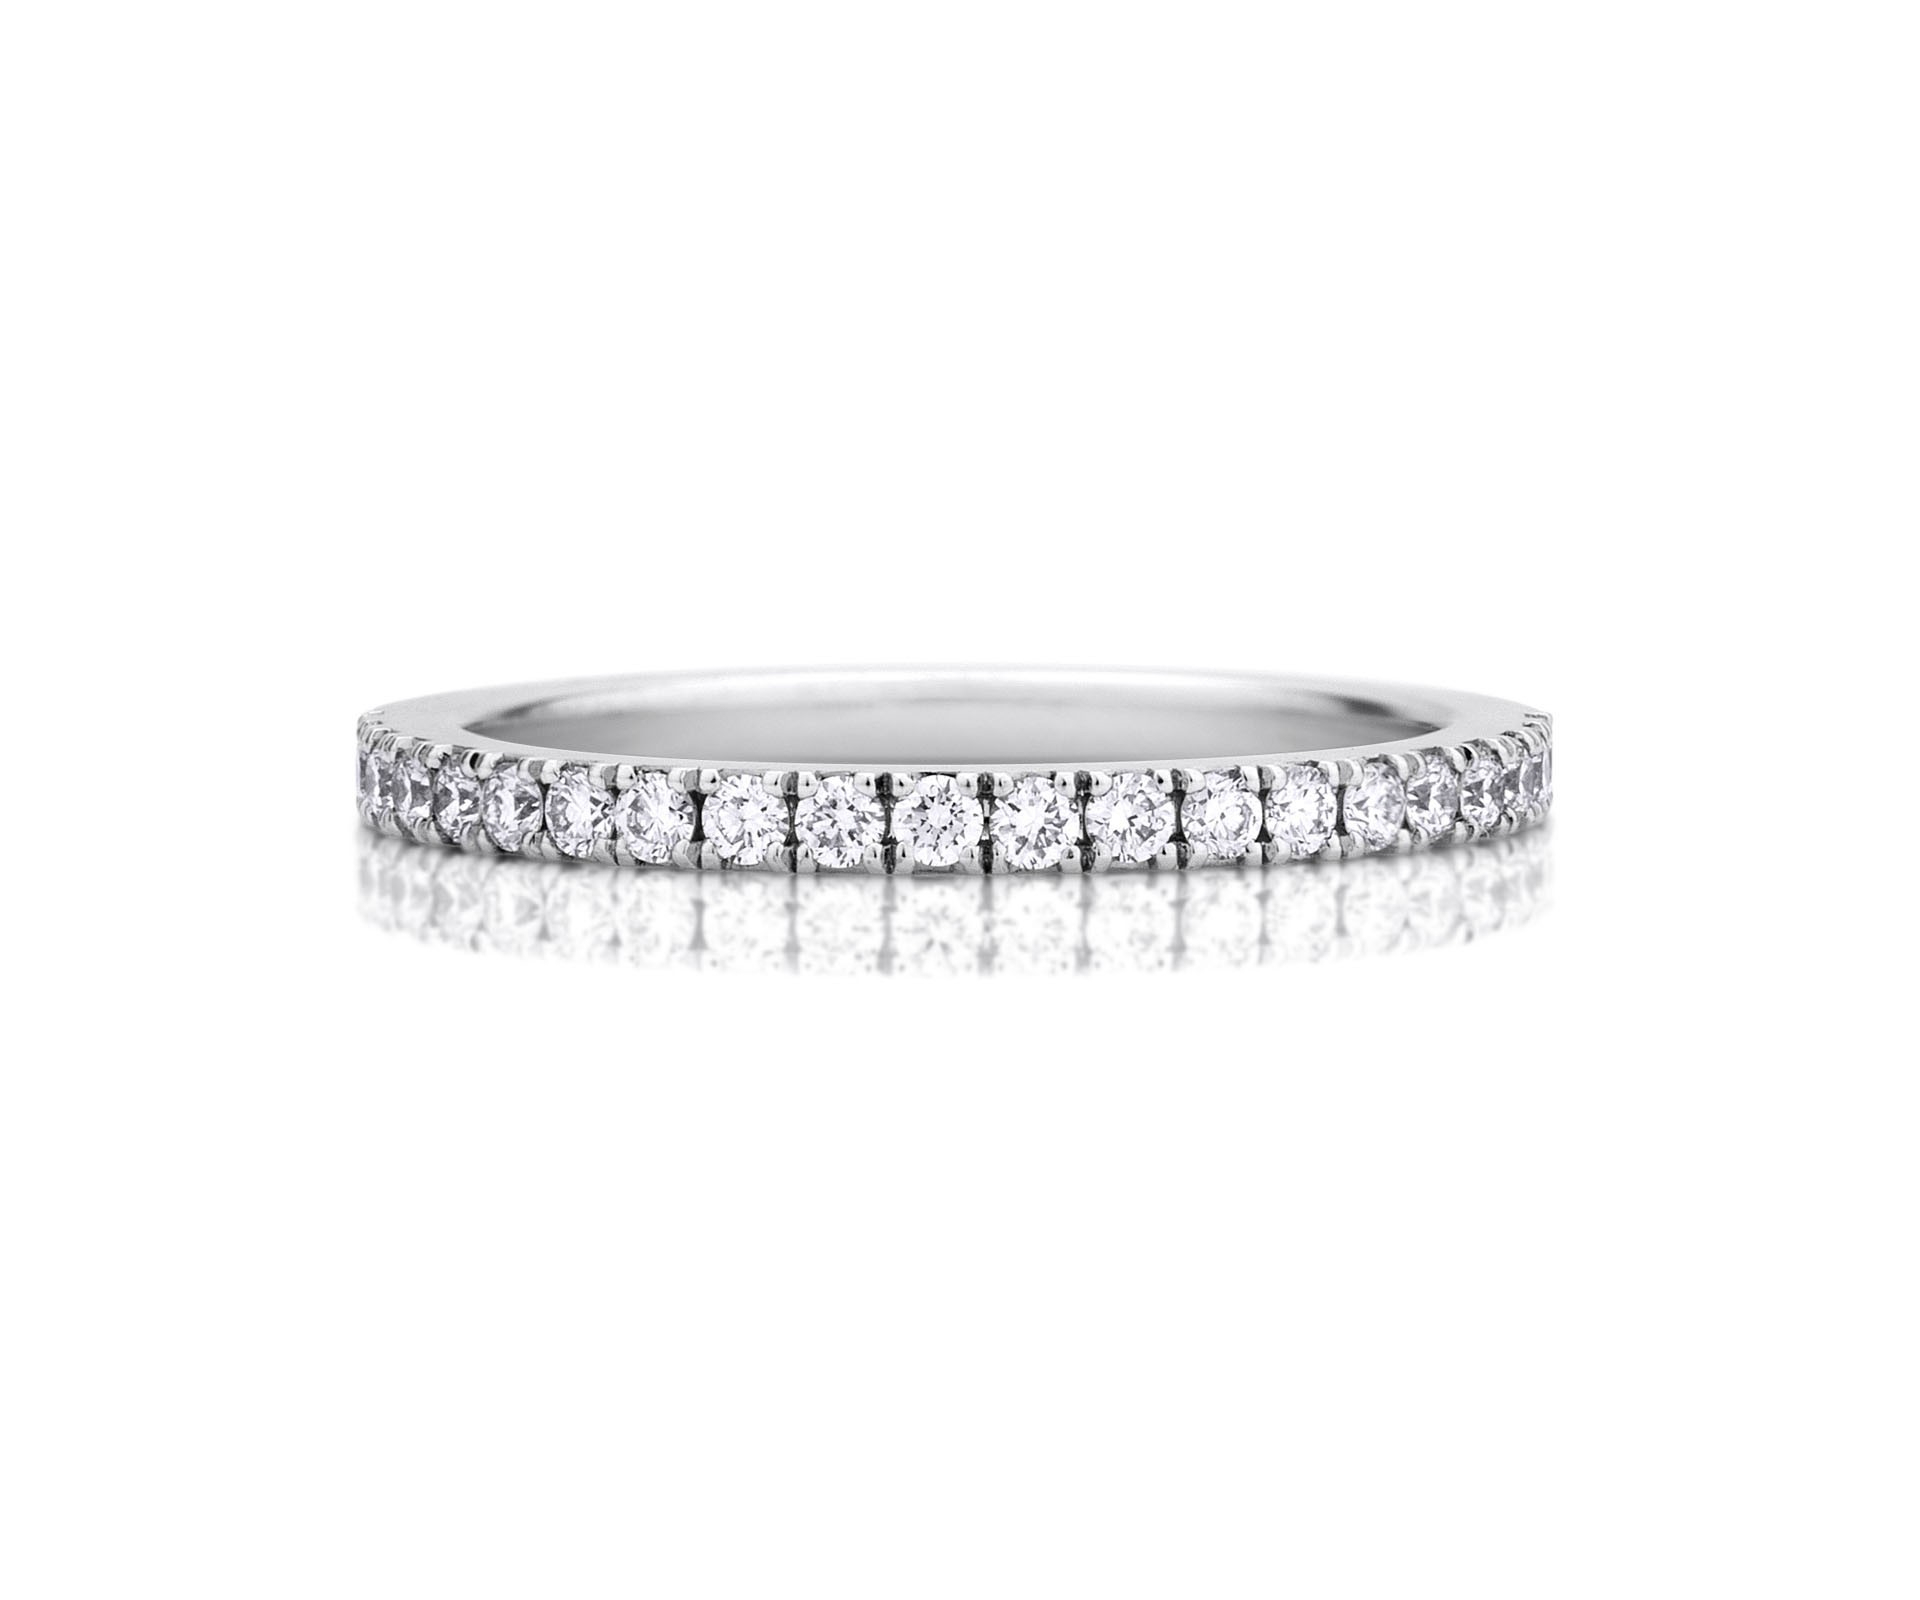 Diamond Wedding Rings & Bands | De Beers Inside Most Recently Released Full Micropavé Diamond Wedding Bands (Gallery 23 of 25)